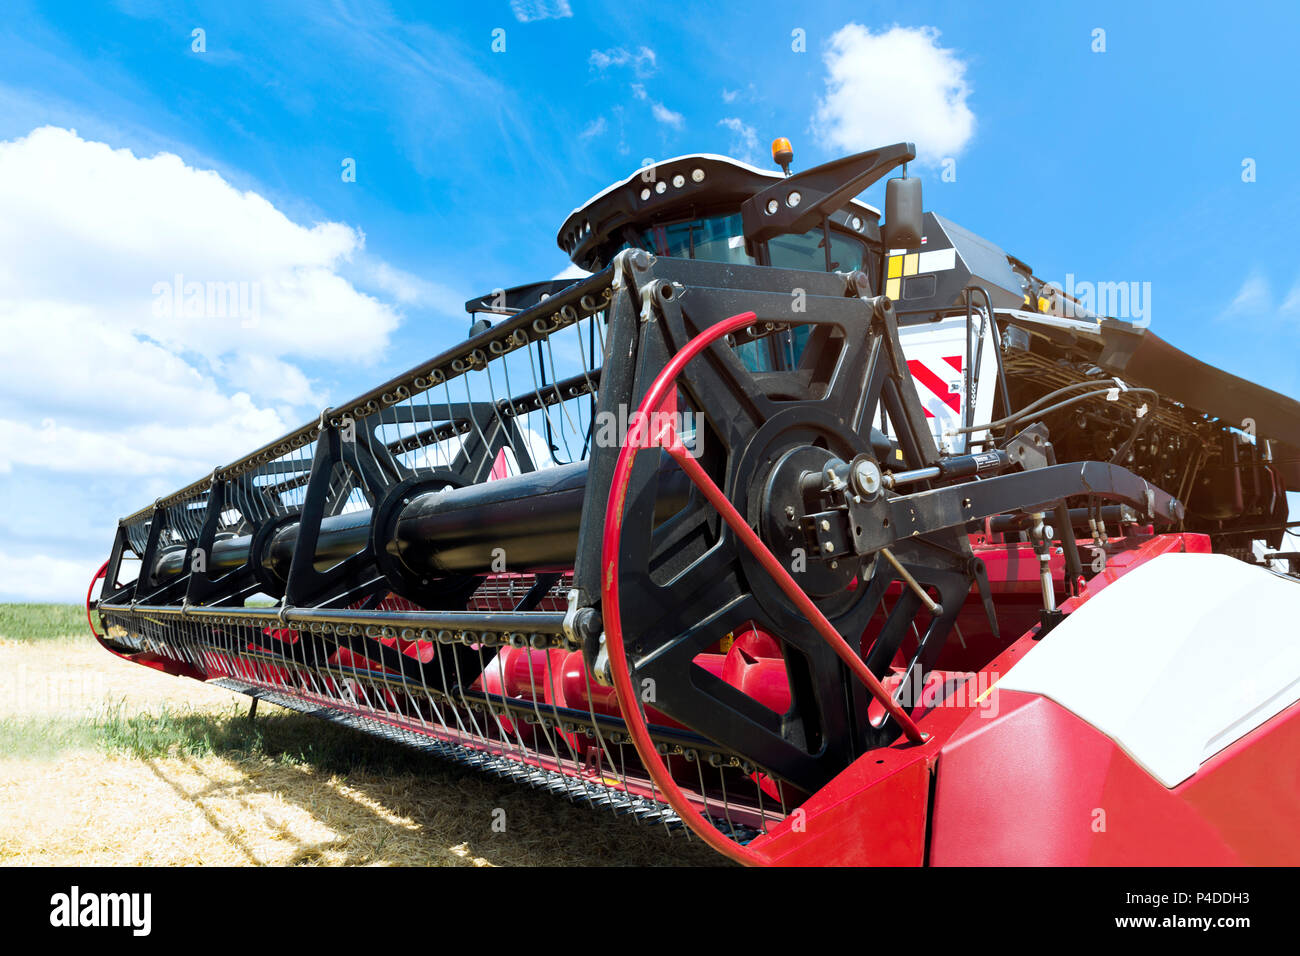 Combine harvester draper head. Agriculture heavy machinery - Stock Image